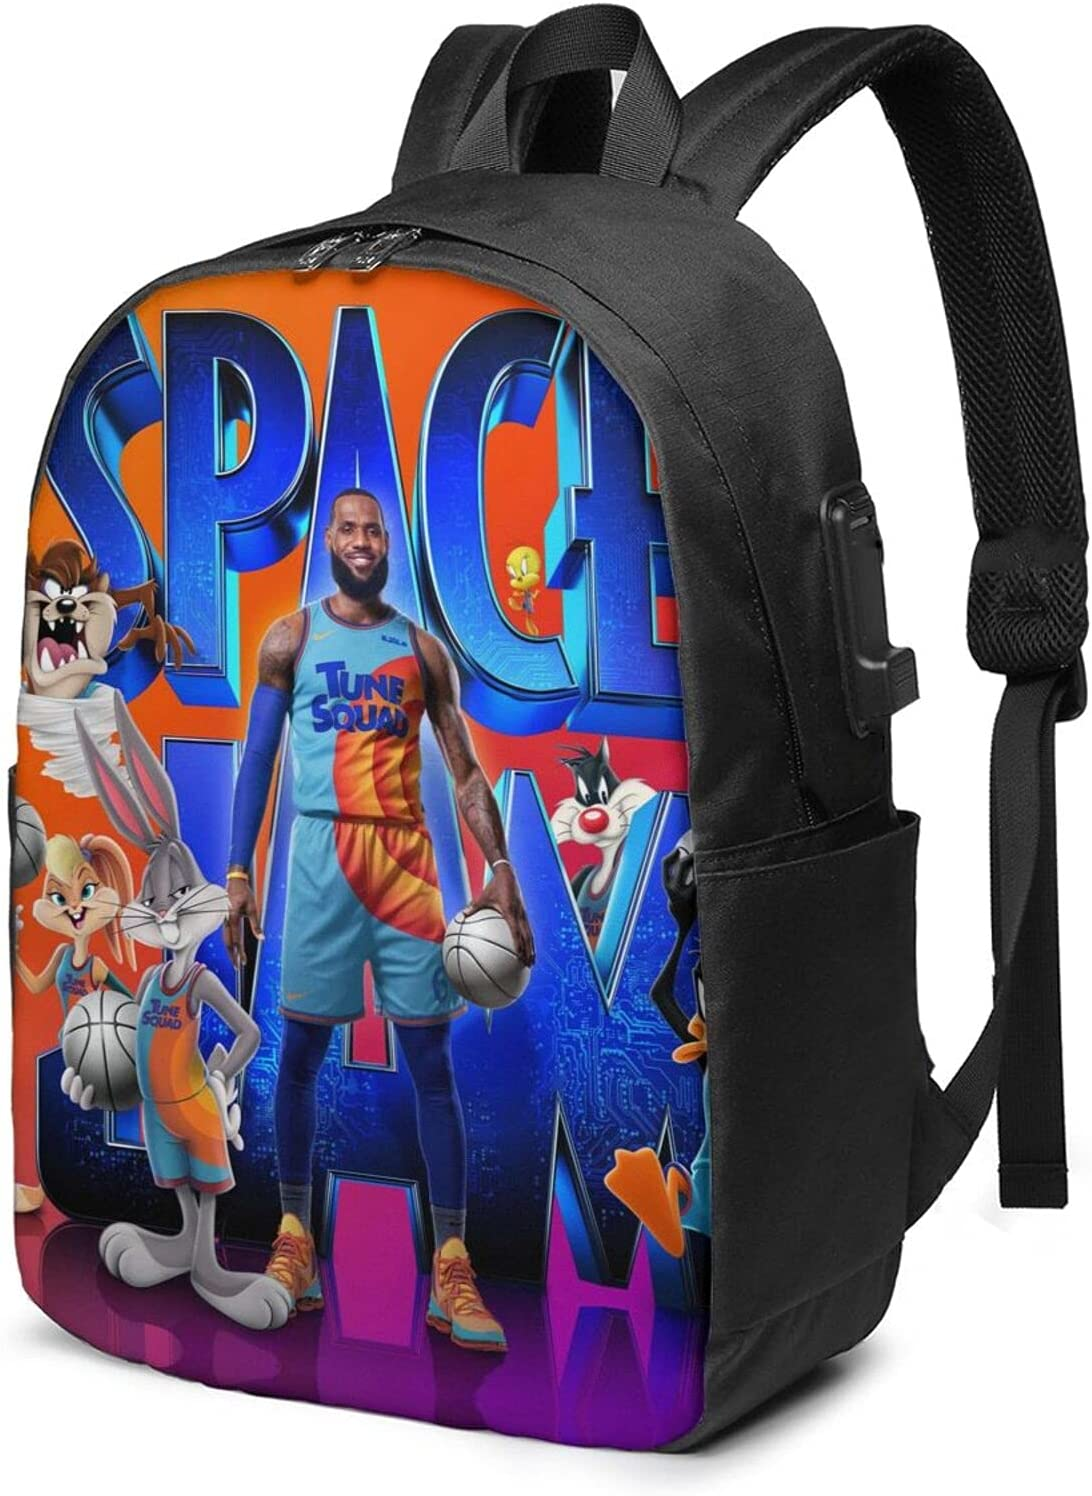 S-pace And Department store High material J-am Backpack Large Travel Casual Bag School